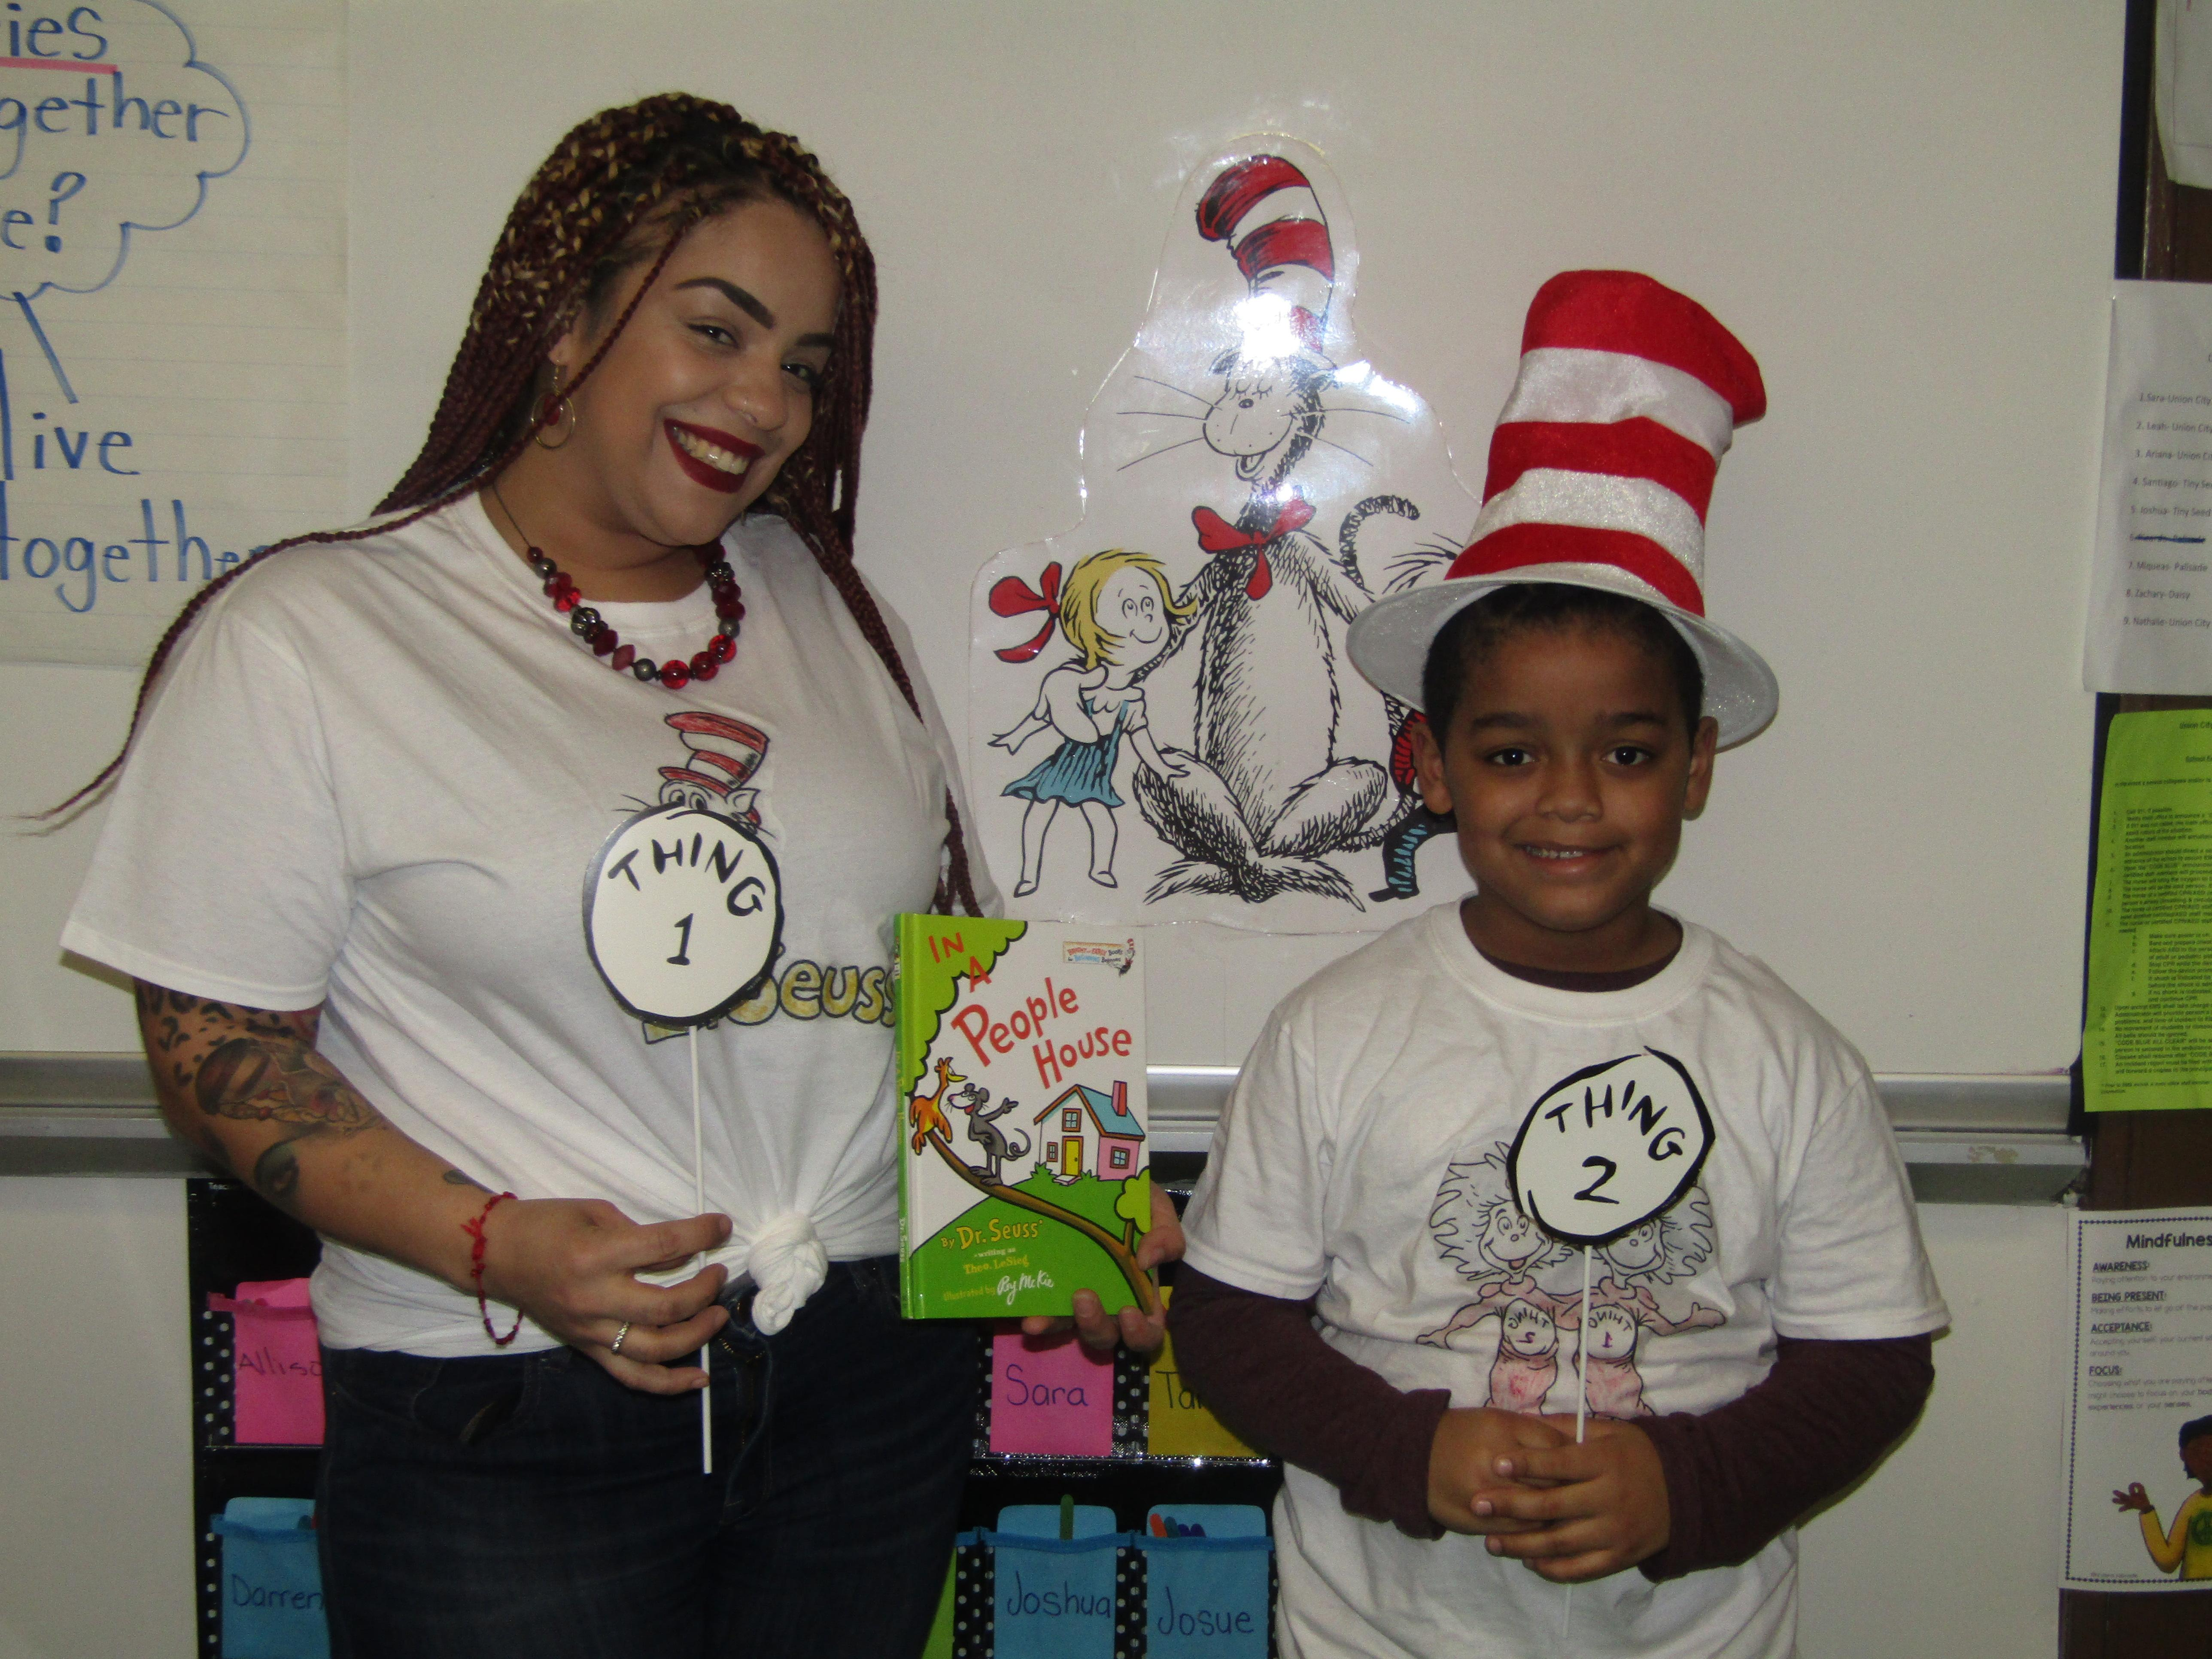 proud mom and son wearing matching things 1 & 2 shirts holding dr. seuss book